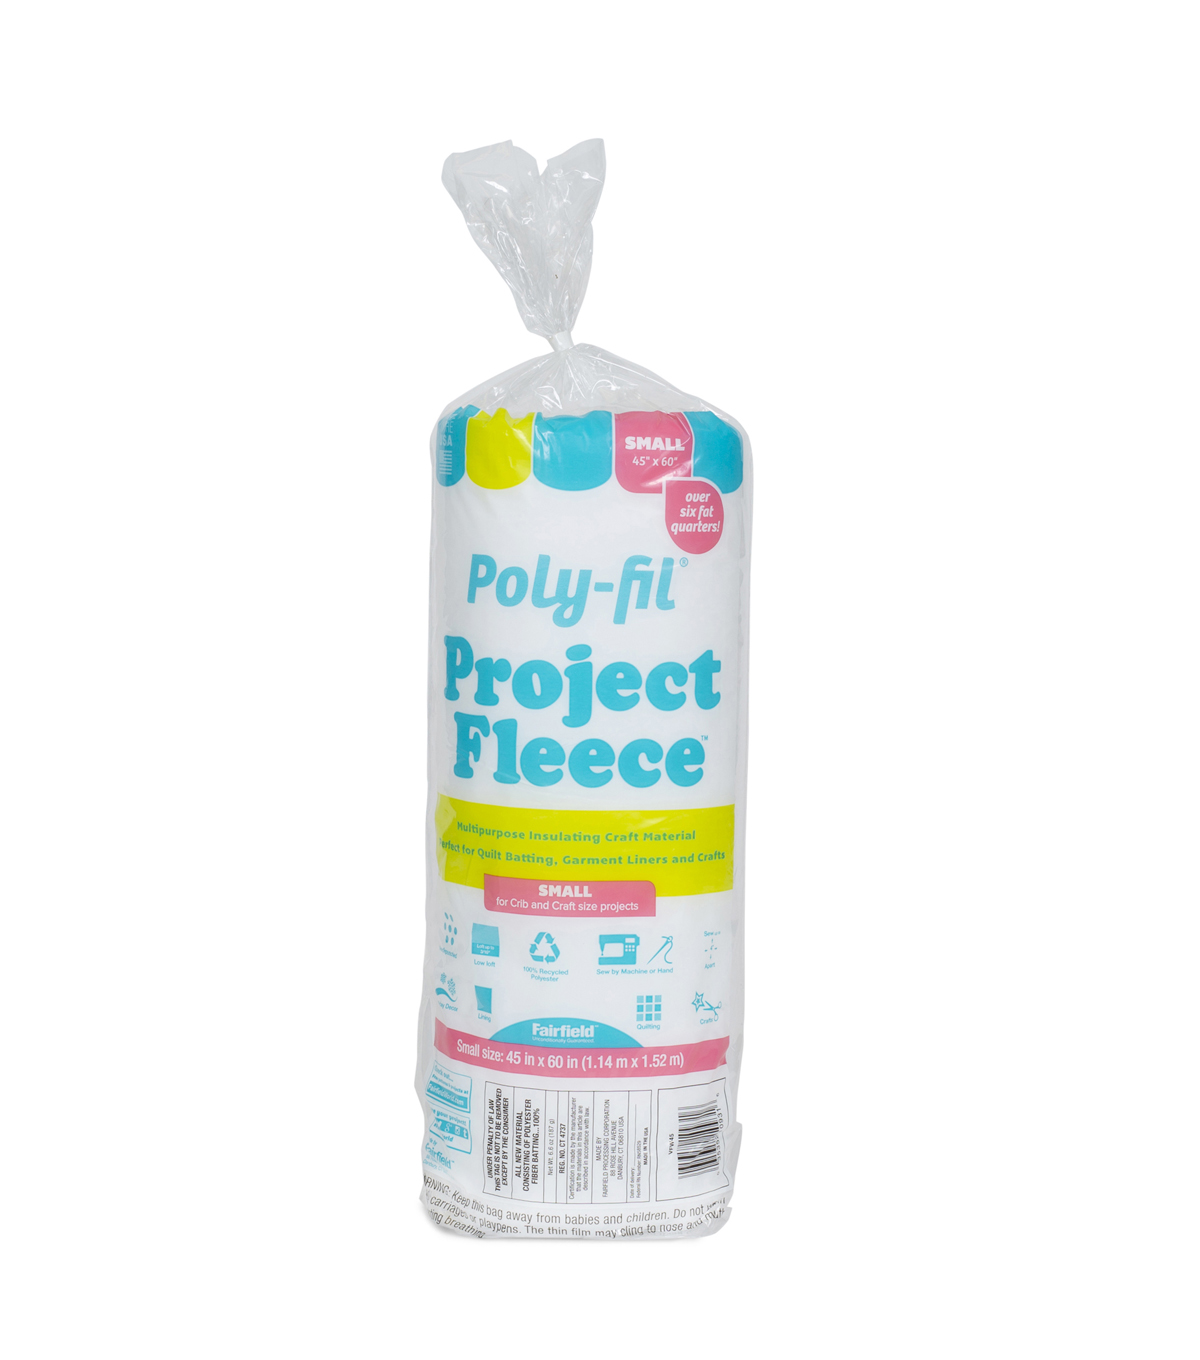 Poly-Fil Project Fleece Batting 45\u0022 x 60\u0022